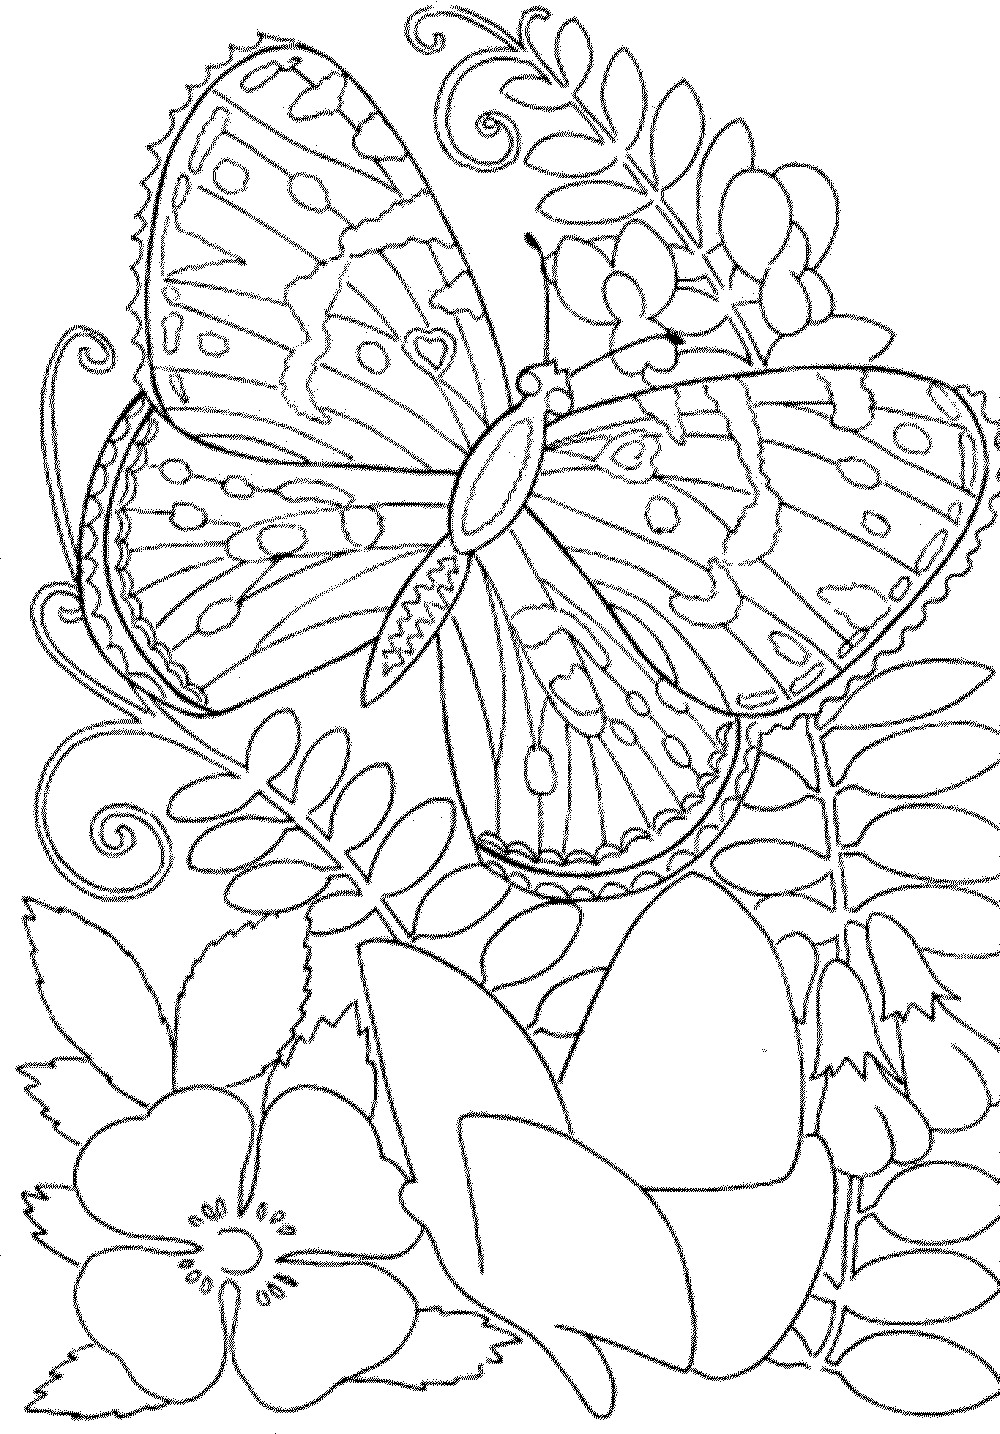 Printable Coloring Pages Adults Free  Coloring Pages for Adults Free Printable 42 Collections